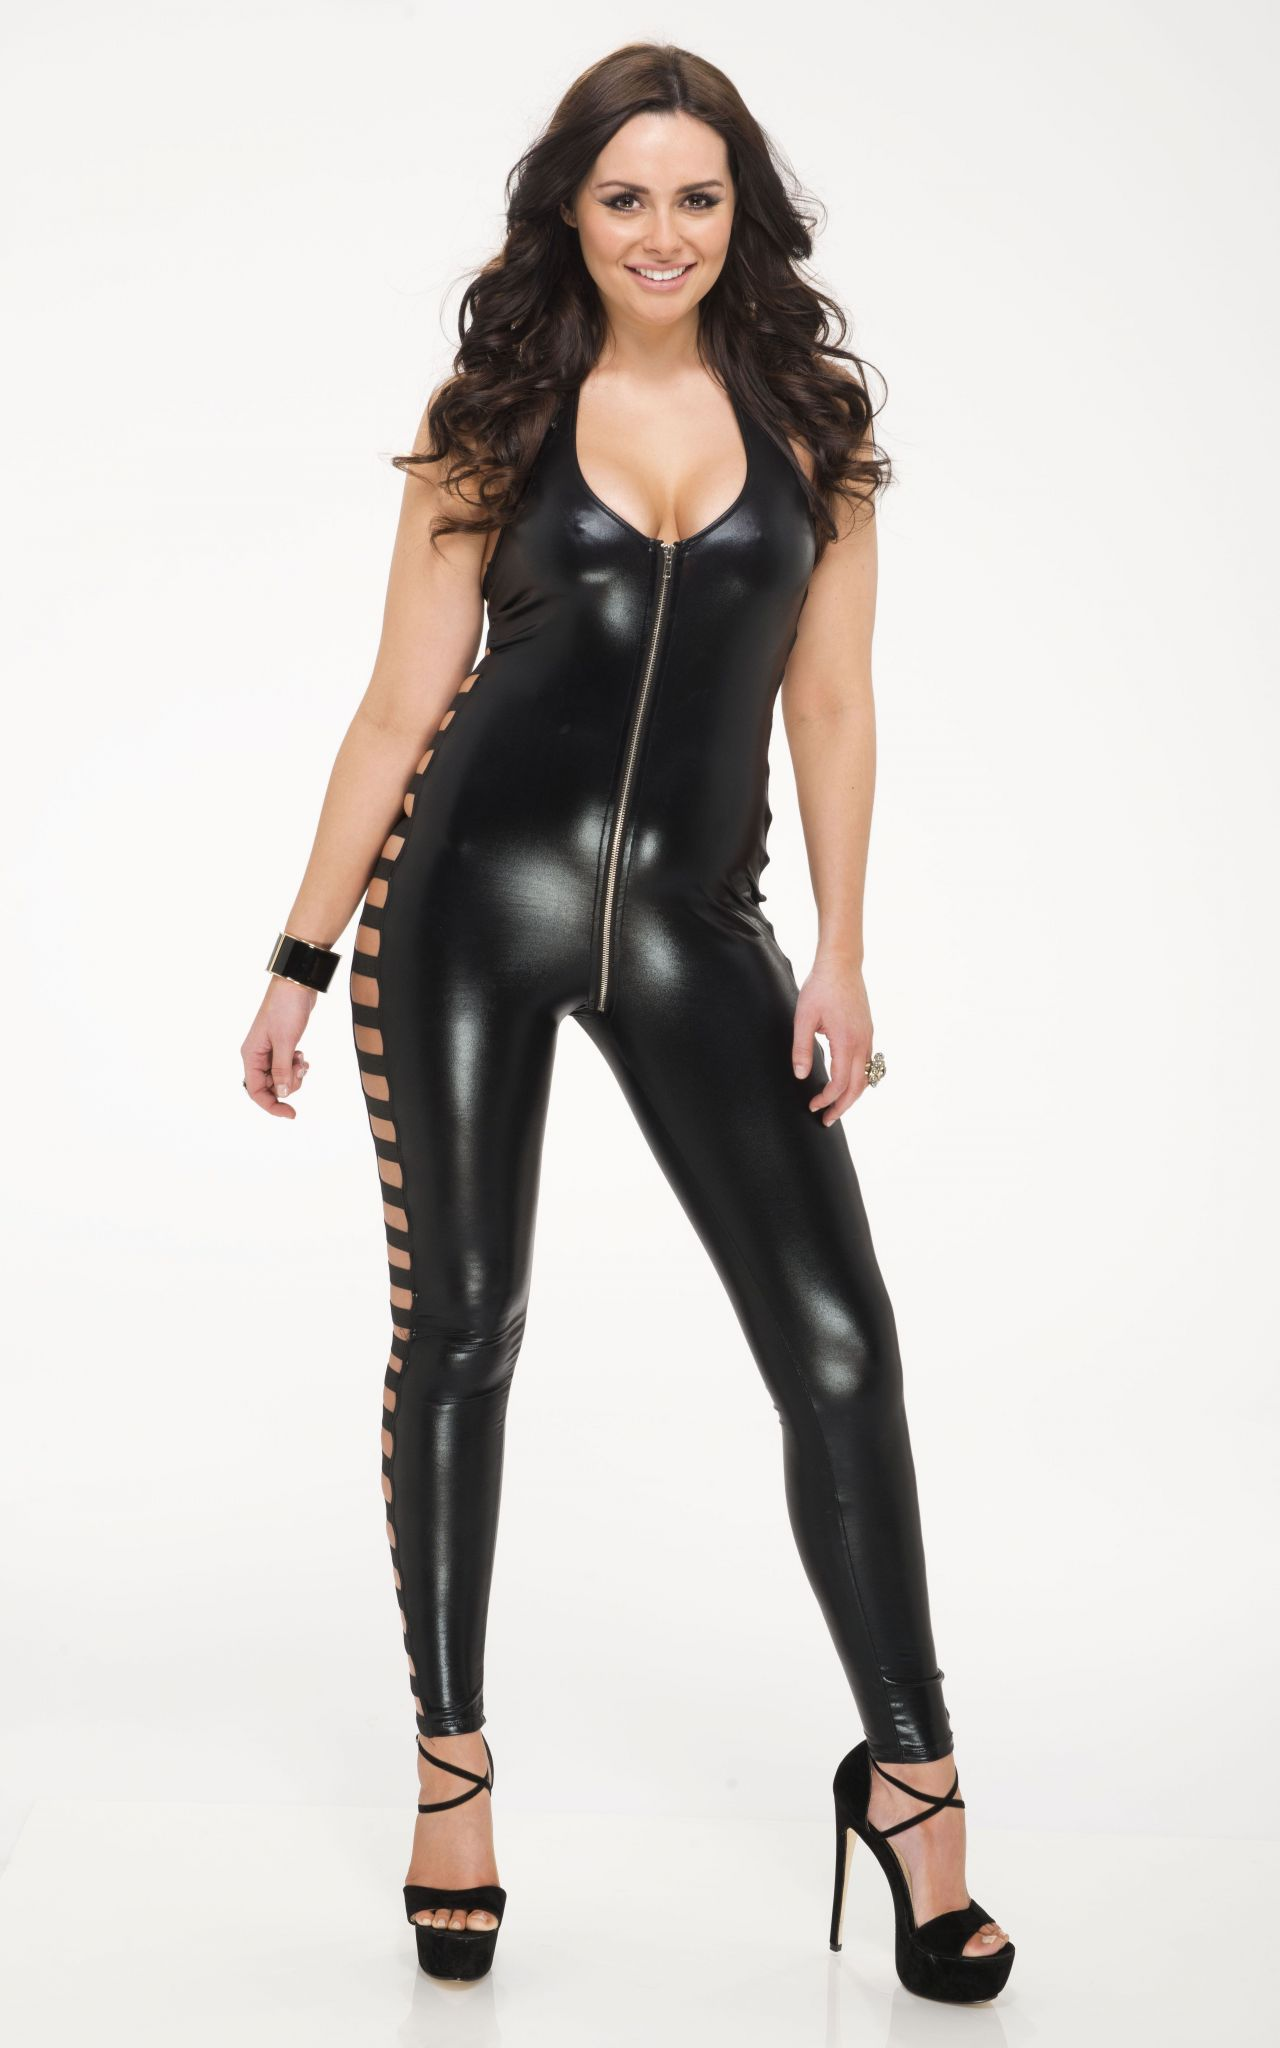 beth crossley in latex dan charity photoshoot 2014